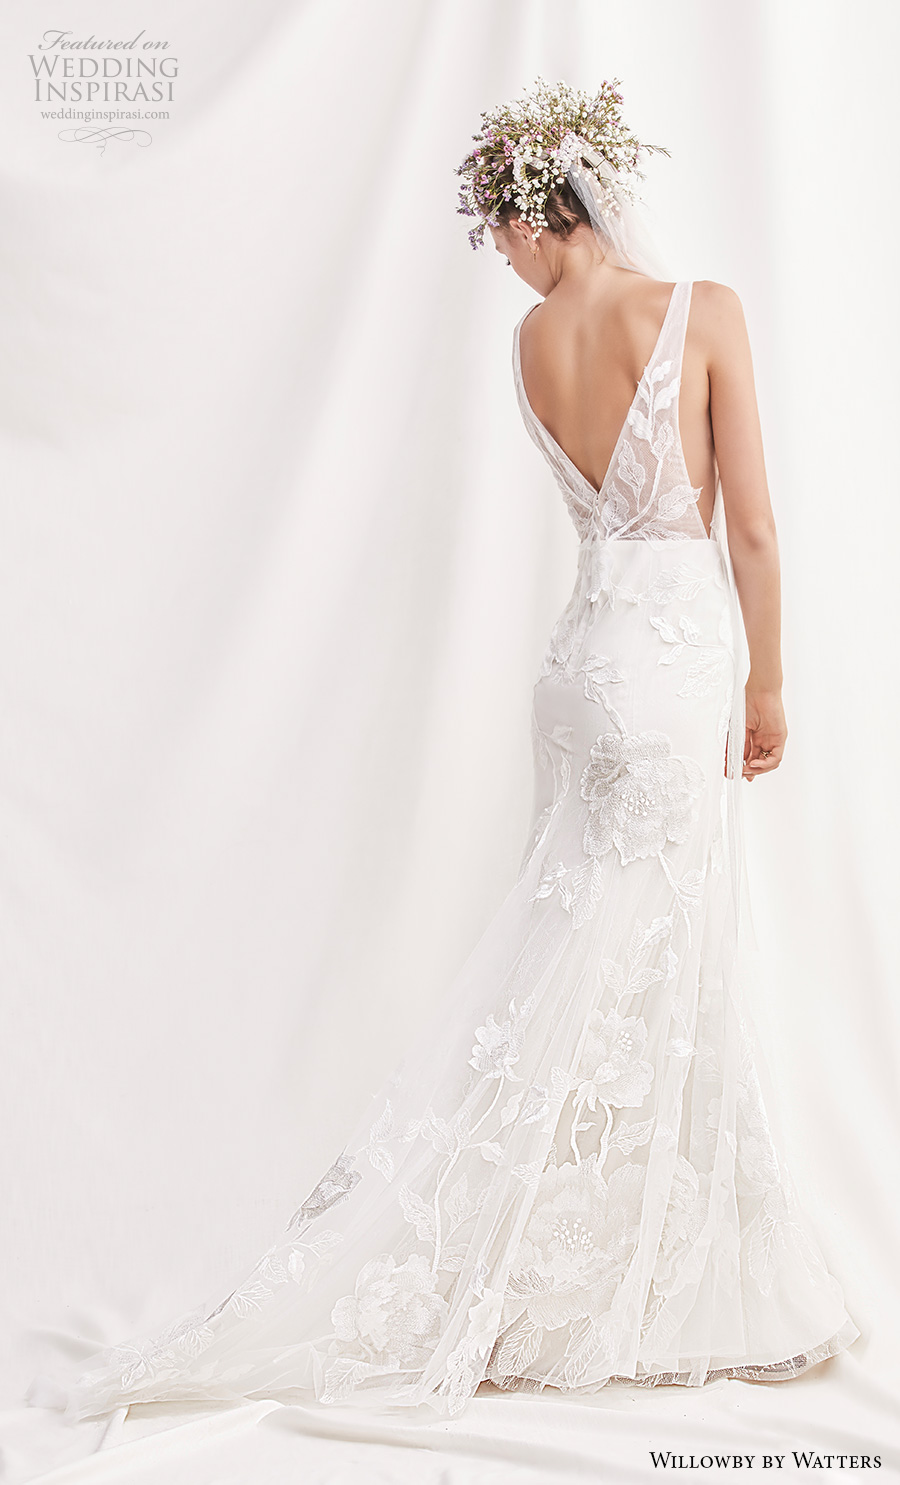 willowby by watters spring 2019 bridal sleeveless v neck full embellishment romantic fit and flare wedding dress v back medium train (9) bv